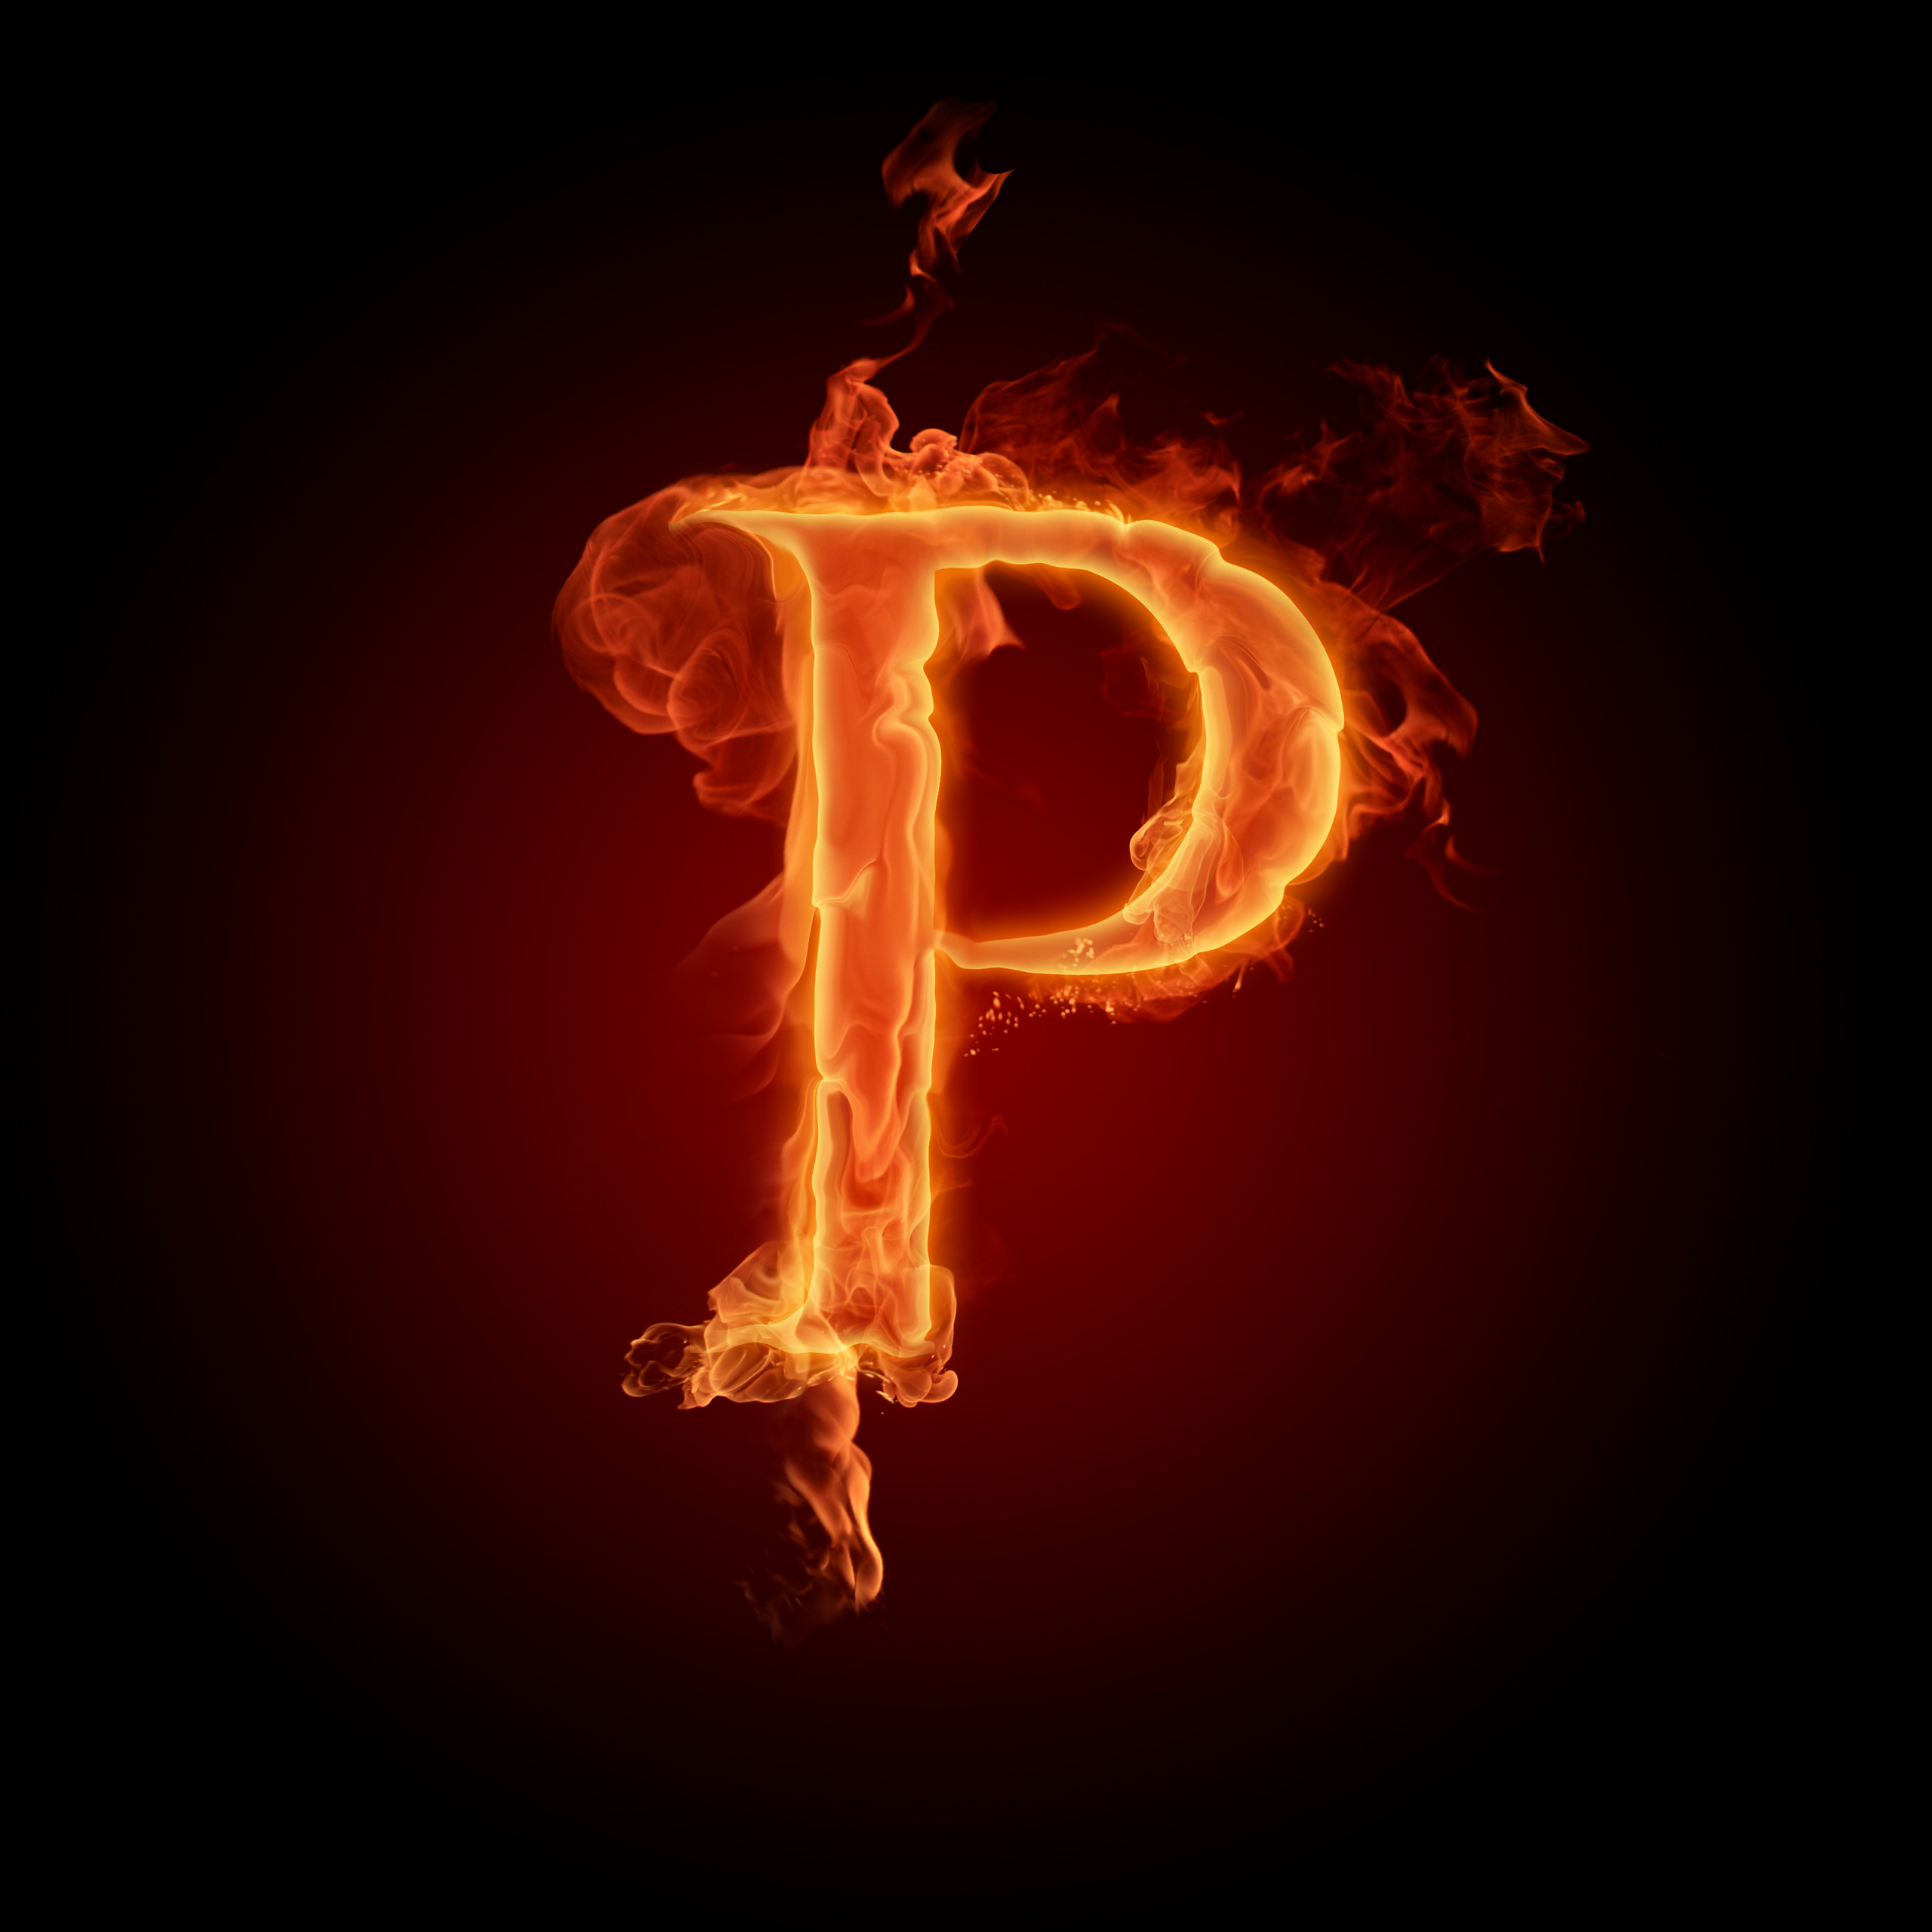 Attractive The Letter P Images The Letter P HD Wallpaper And Background Photos Ideas P & L Form